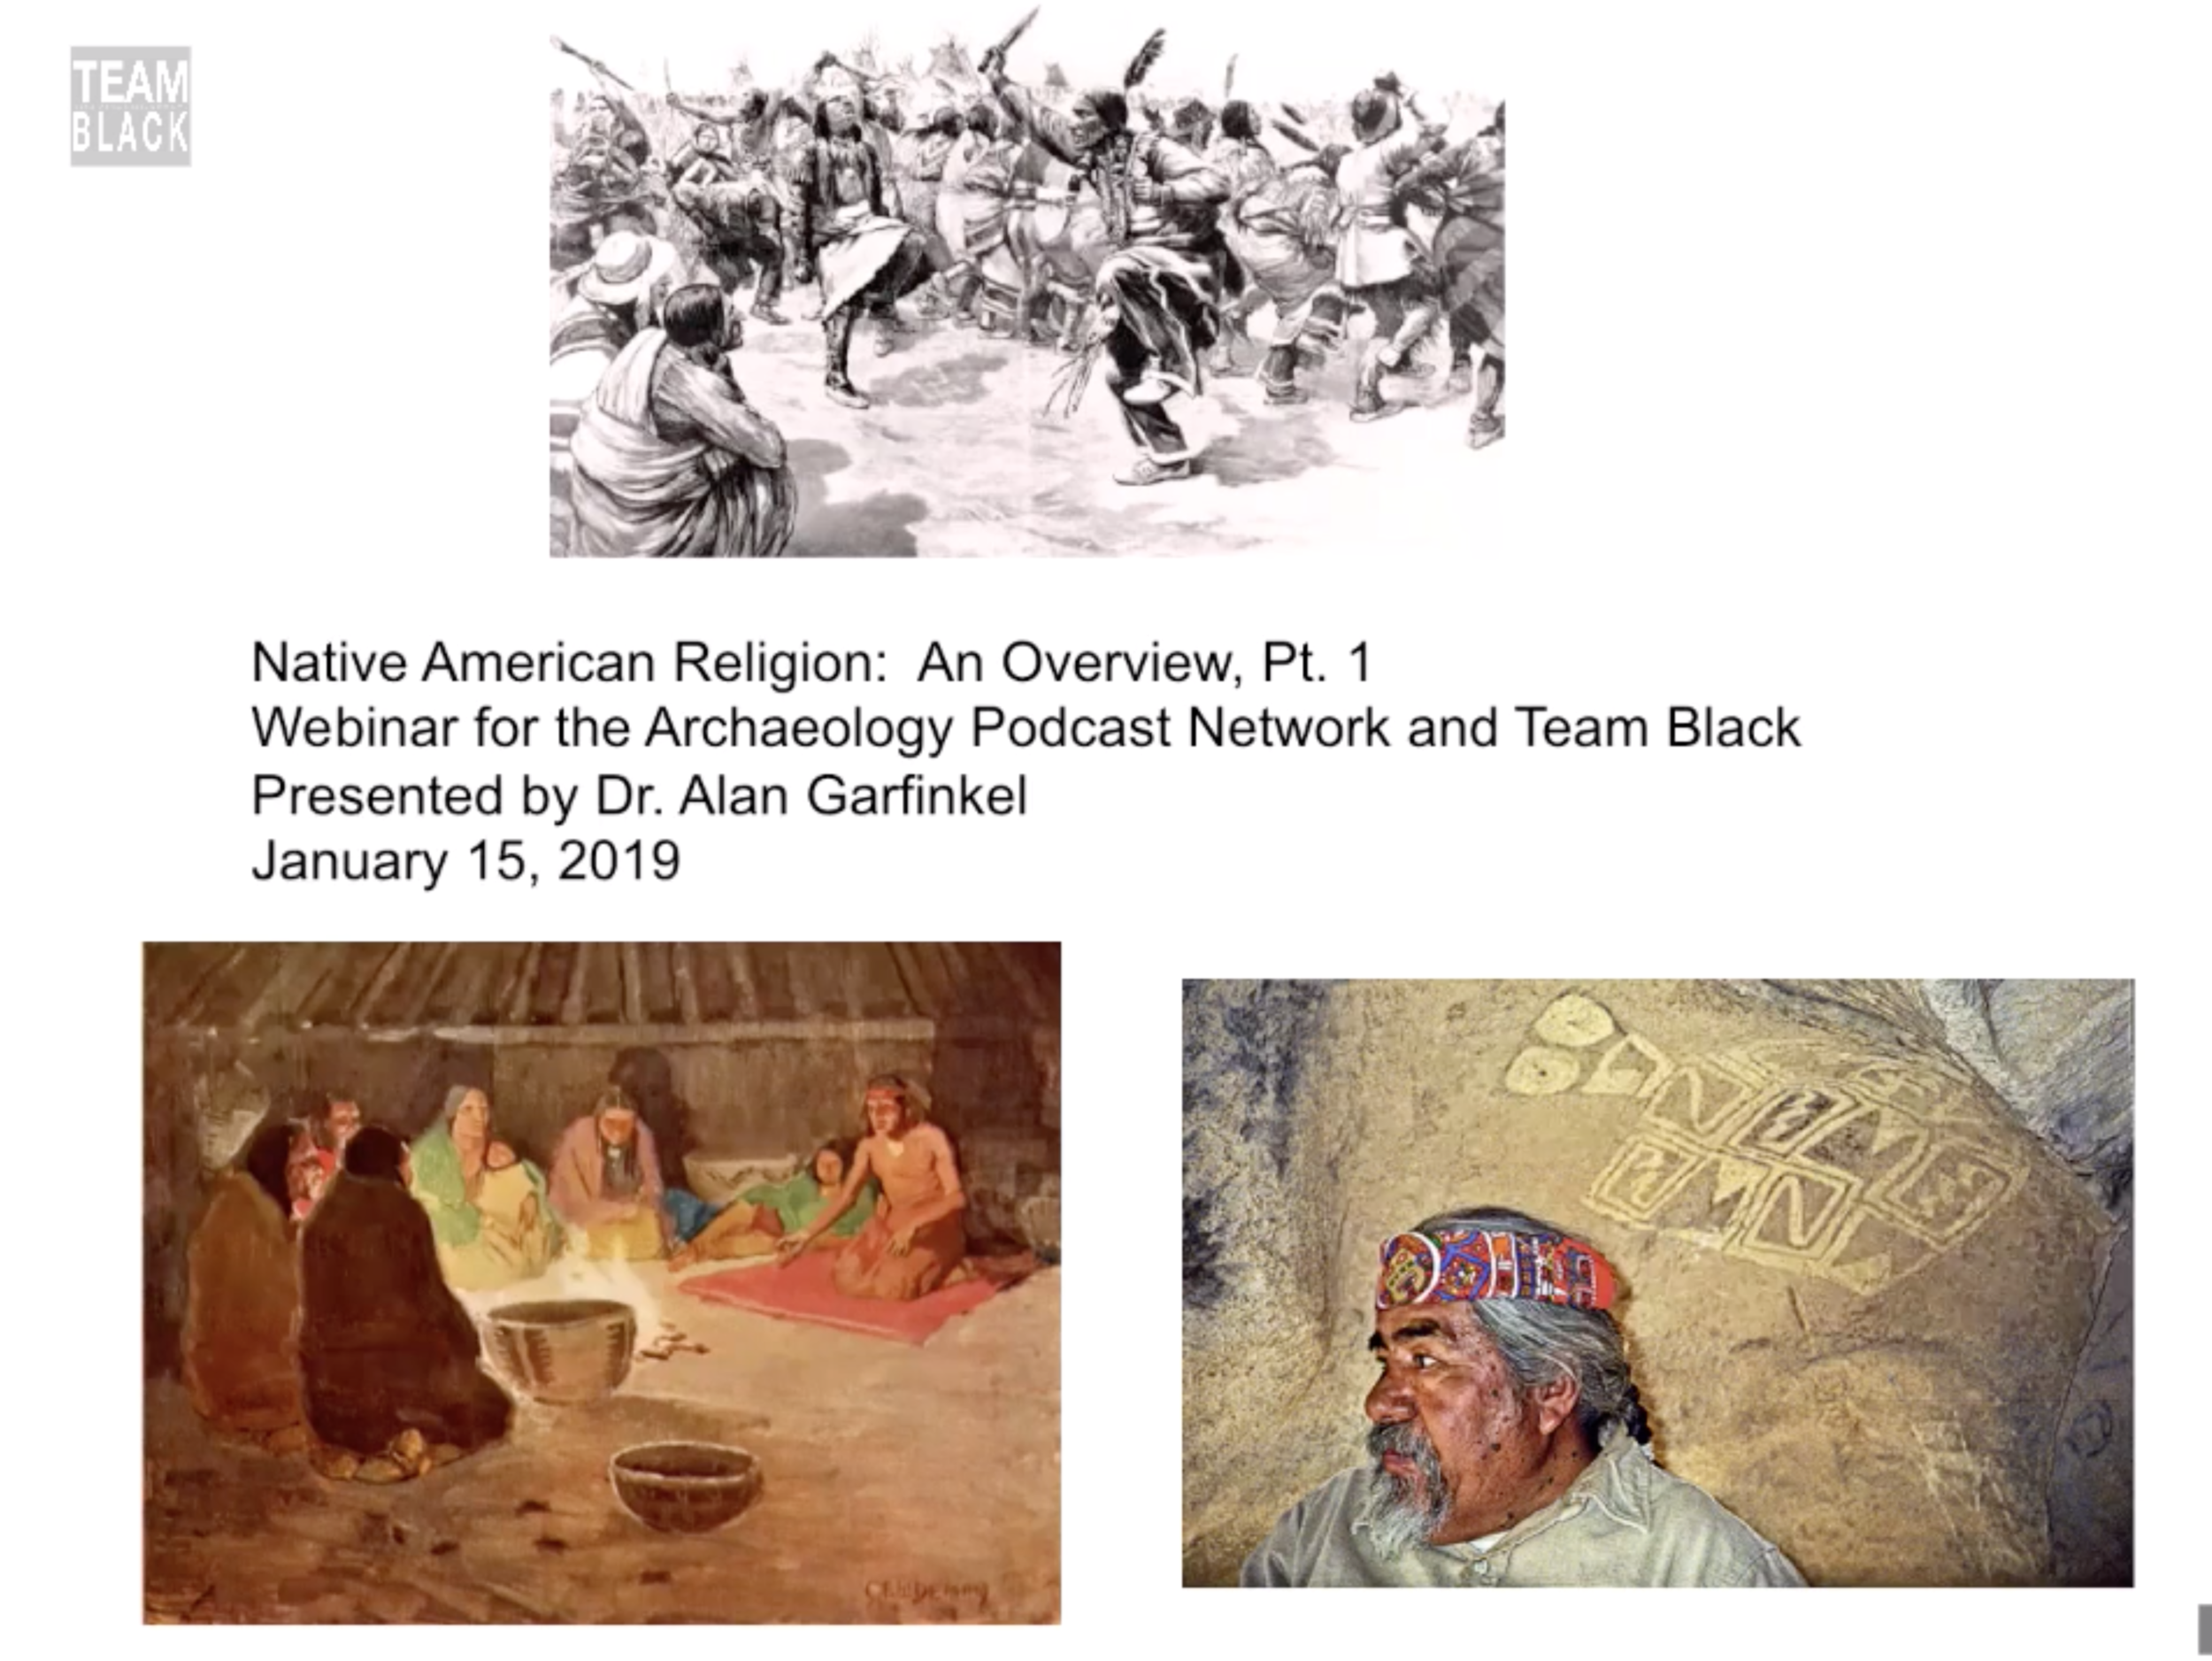 Amerindian Perspectivism - Shamanism, Animism, and Indexical Animals, Dr. Alan Garfinkel   This presentation provides a unique insiders' view of breakthrough research on AmerIndian religious metaphor and cosmology.  Through compelling visual aids and a dynamic lecture you will personally connect with one of most recognized and scholarly researchers known worldwide for his research on indigenous religious metaphor, Native American iconography, shamanistic ritual ceremonialism and artistic representations.